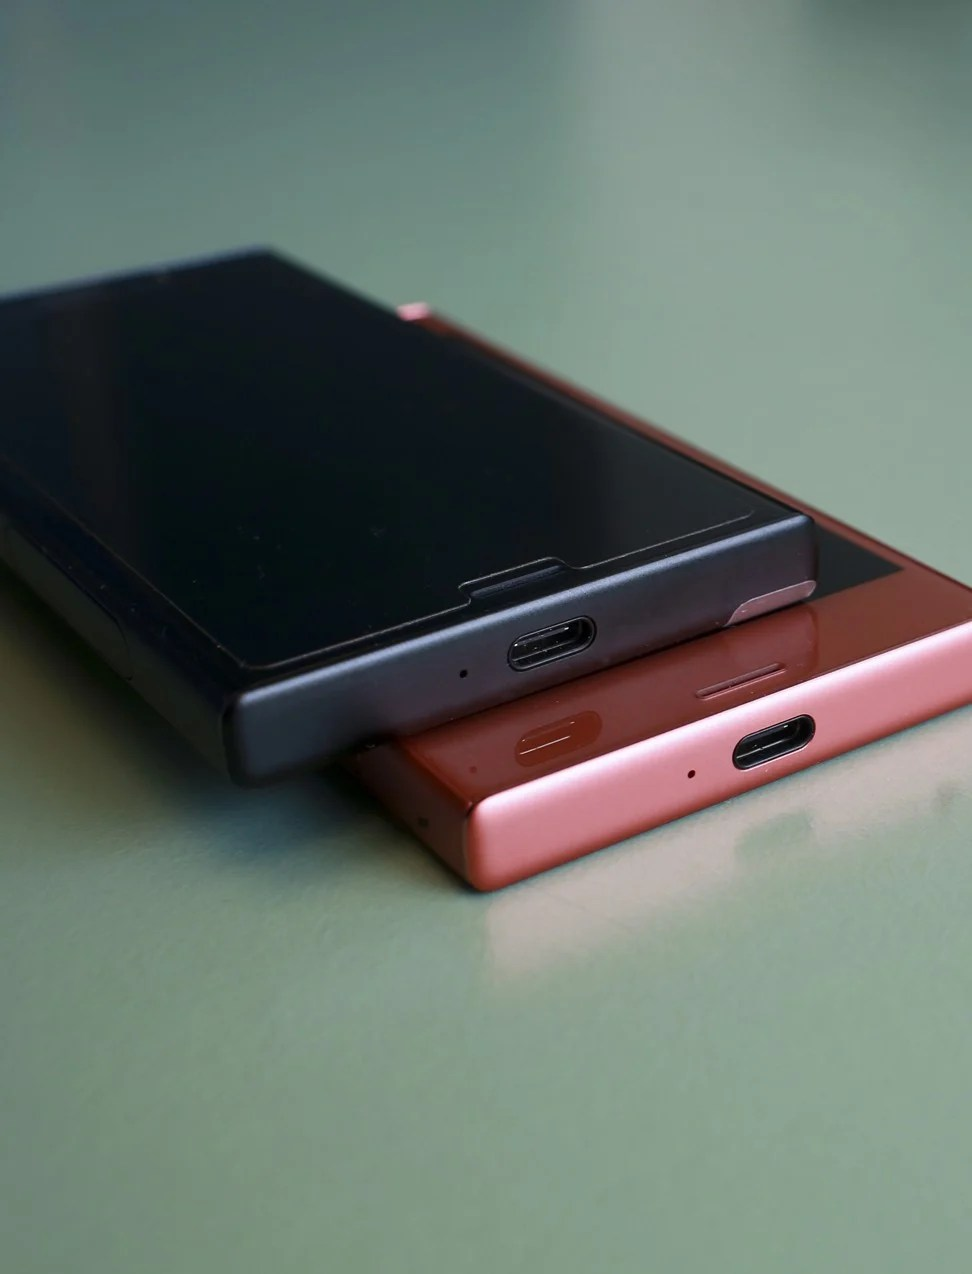 Sony Xz1 Compact System Update Sony Xperia Xz1 Compact Review Worthy Successor To Z5 And